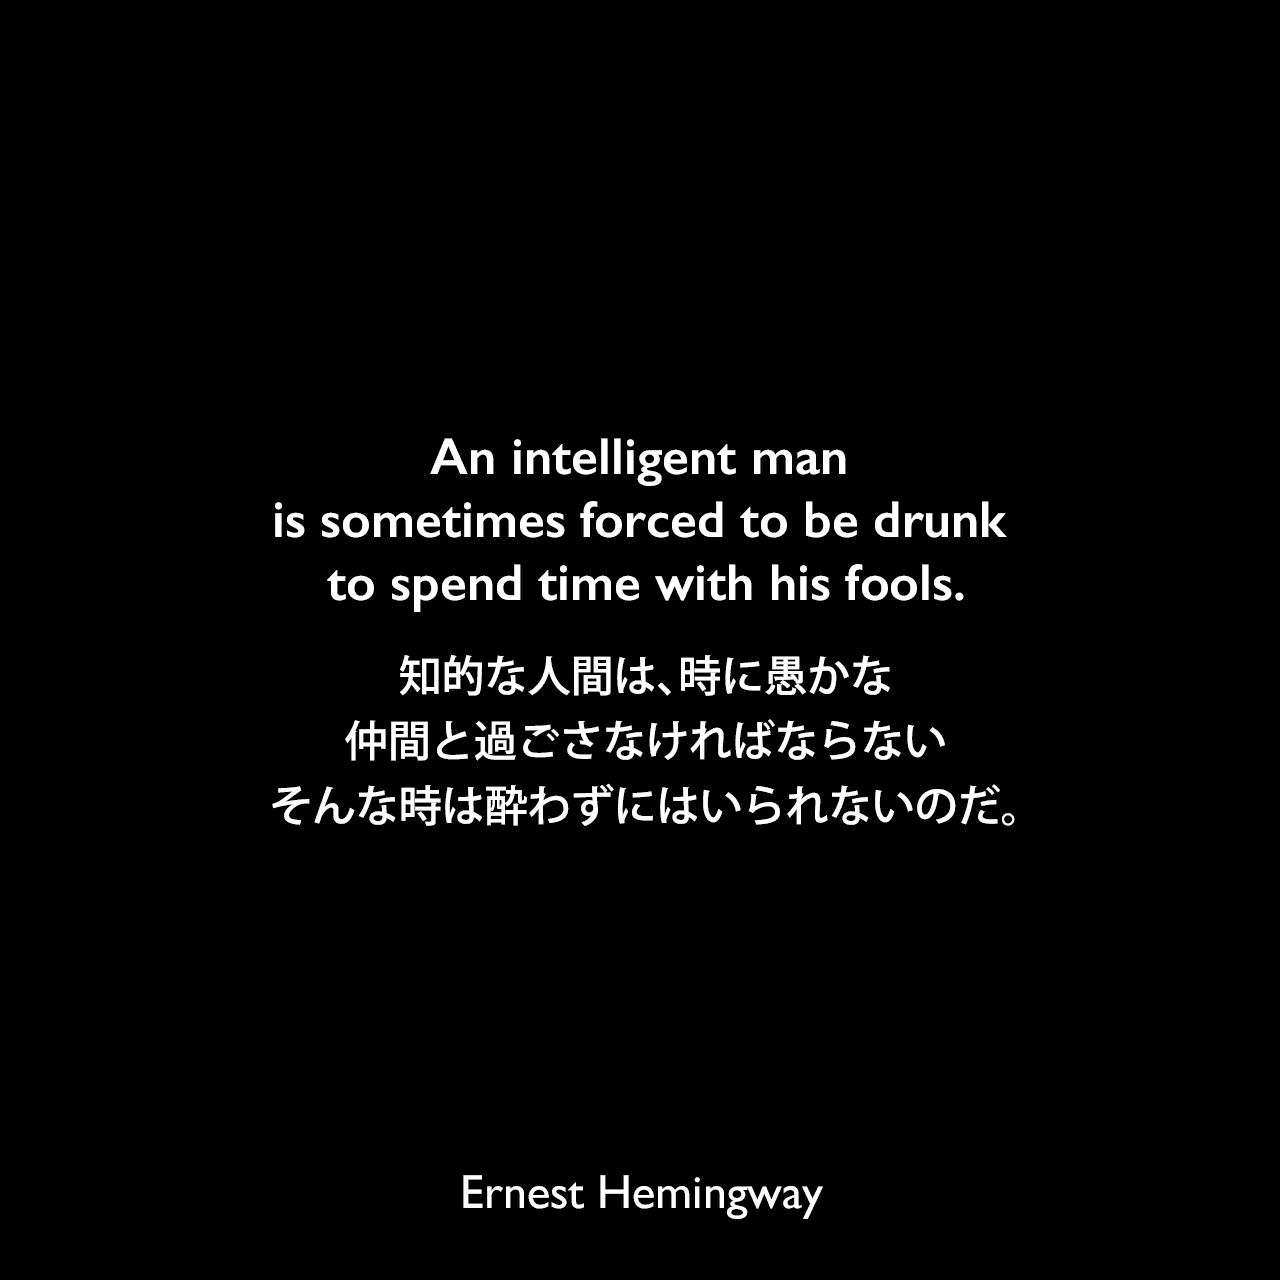 An intelligent man is sometimes forced to be drunk to spend time with his fools.知的な人間は、時に愚かな仲間と過ごさなければならない、そんな時は酔わずにはいられないのだ。Ernest Hemingway